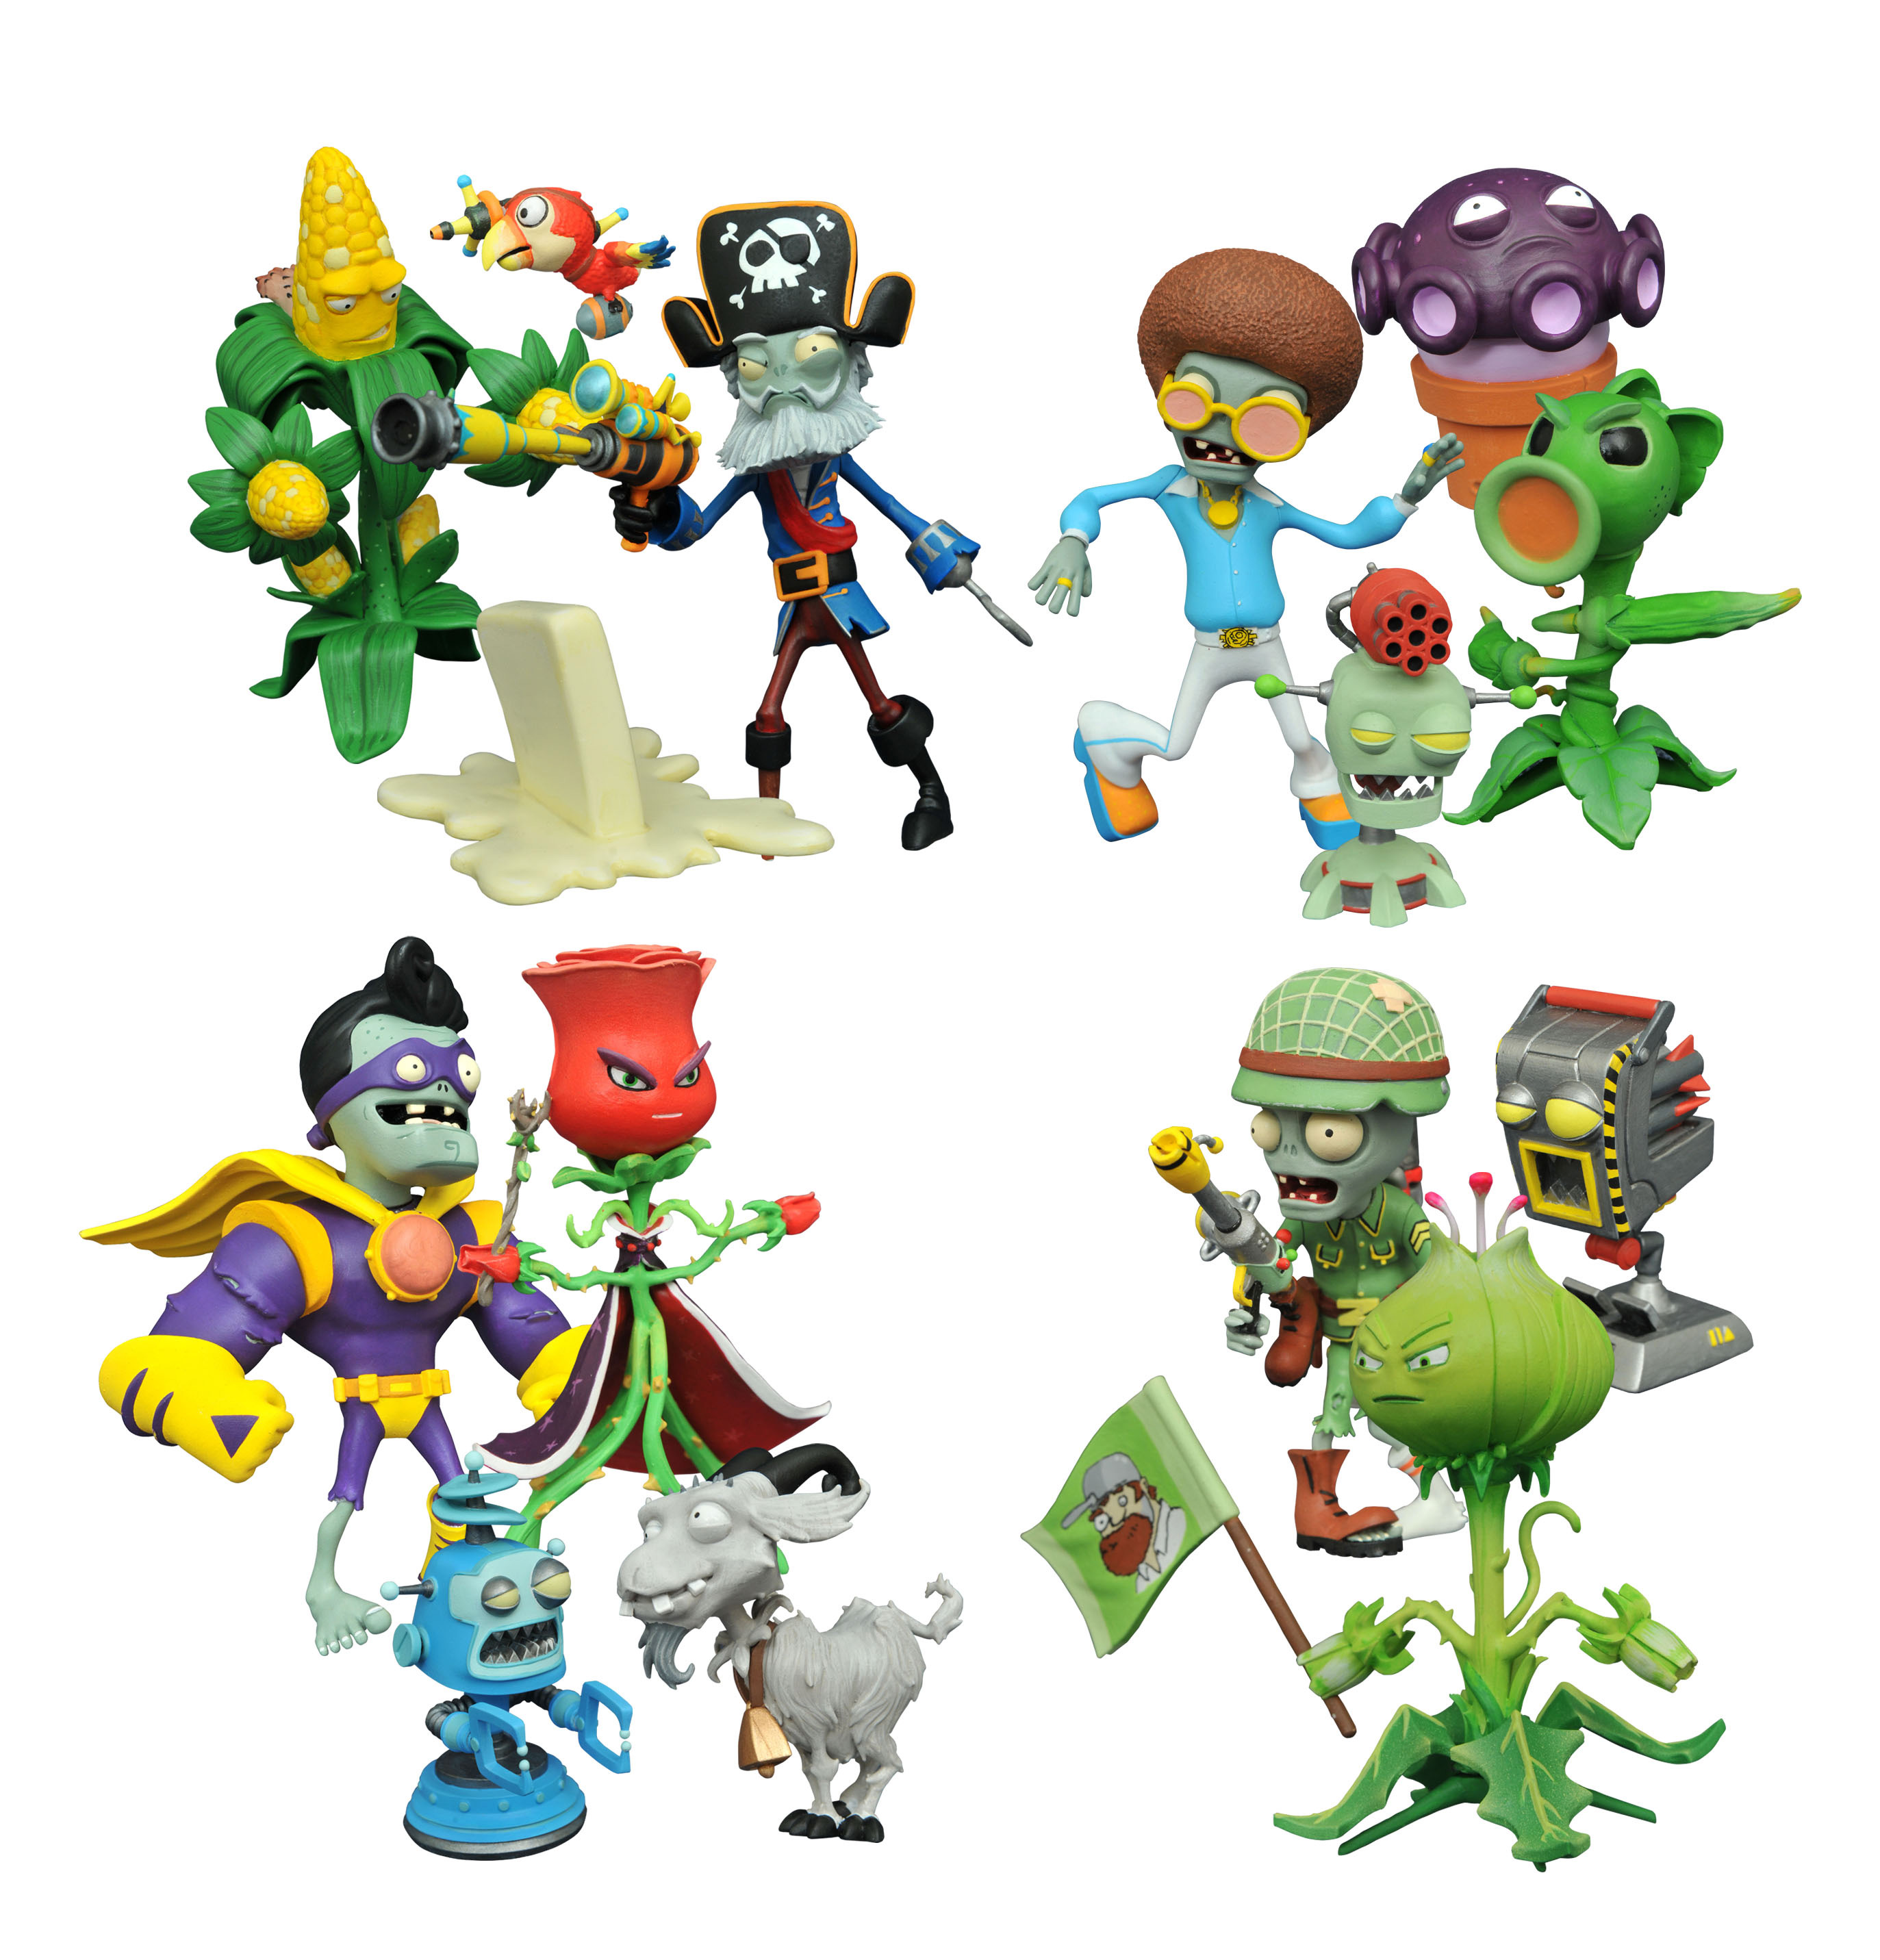 New Diamond Select Toy Releases Plants Vs Zombies Alien And More The Toyark News